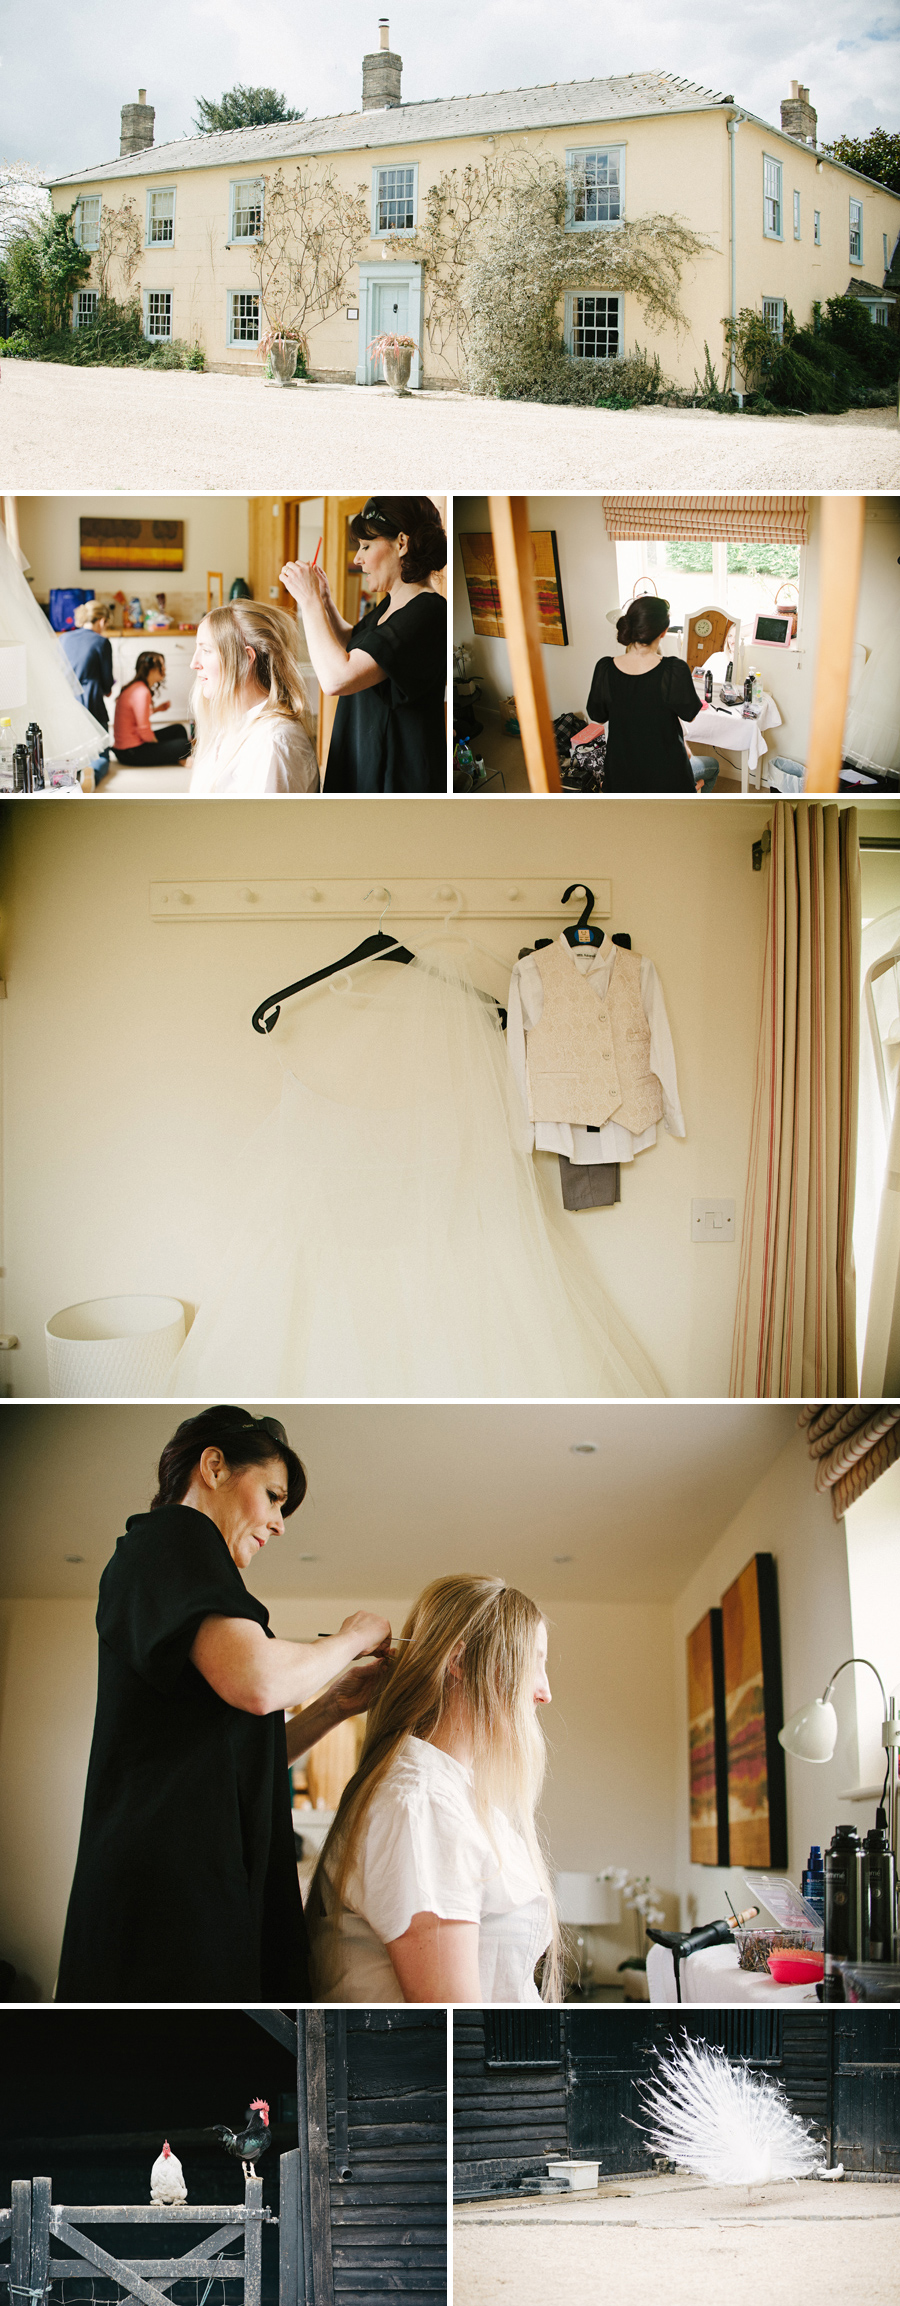 South Farm bridal preparation